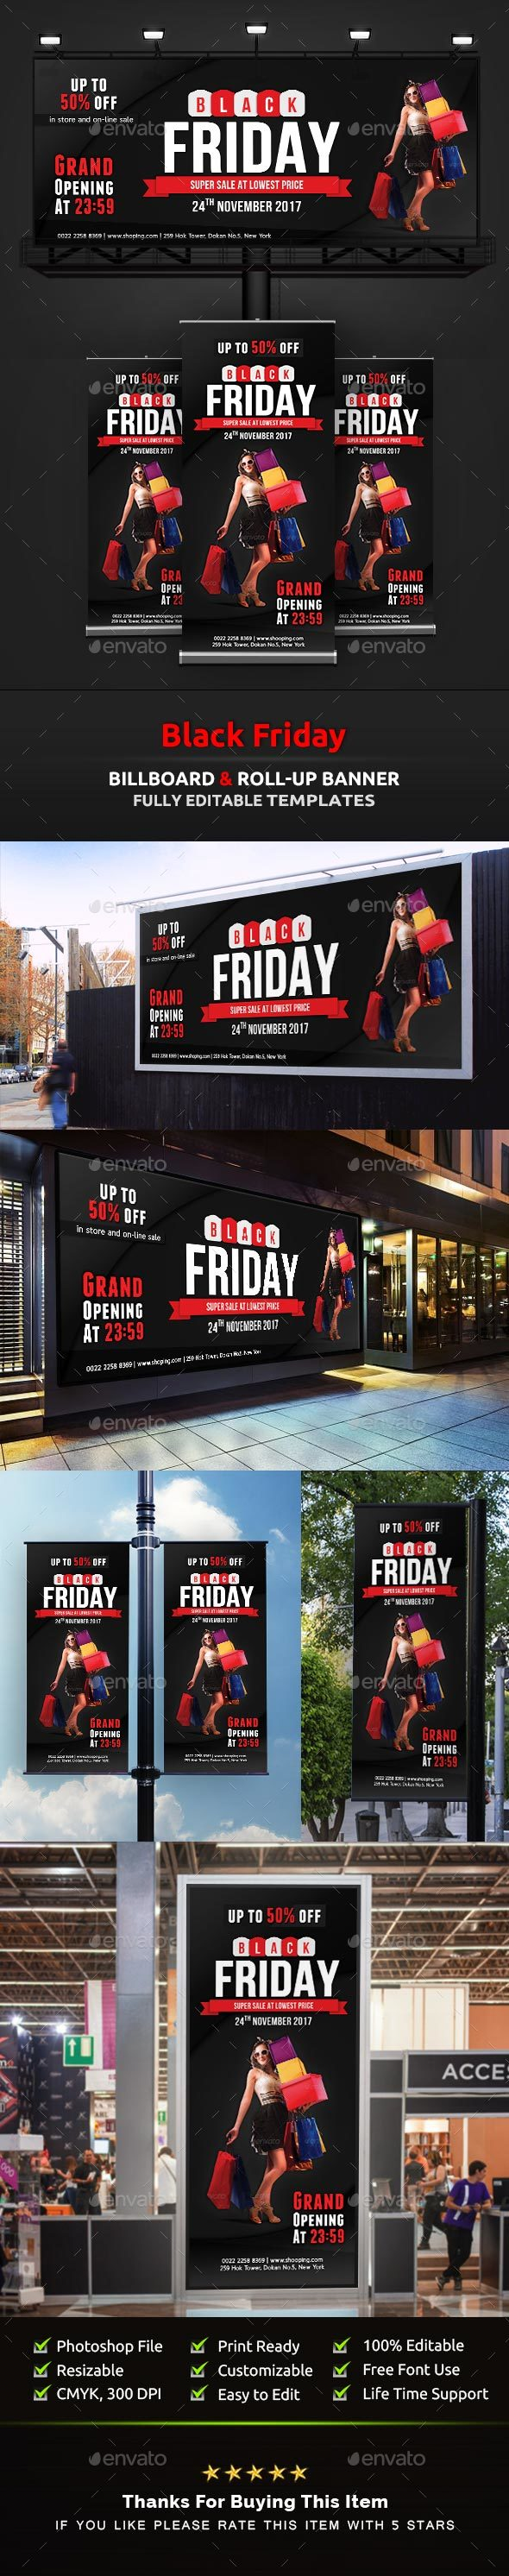 Black Friday Billboard | Black Friday Roll-Up Banner Templates - Signage Print Templates